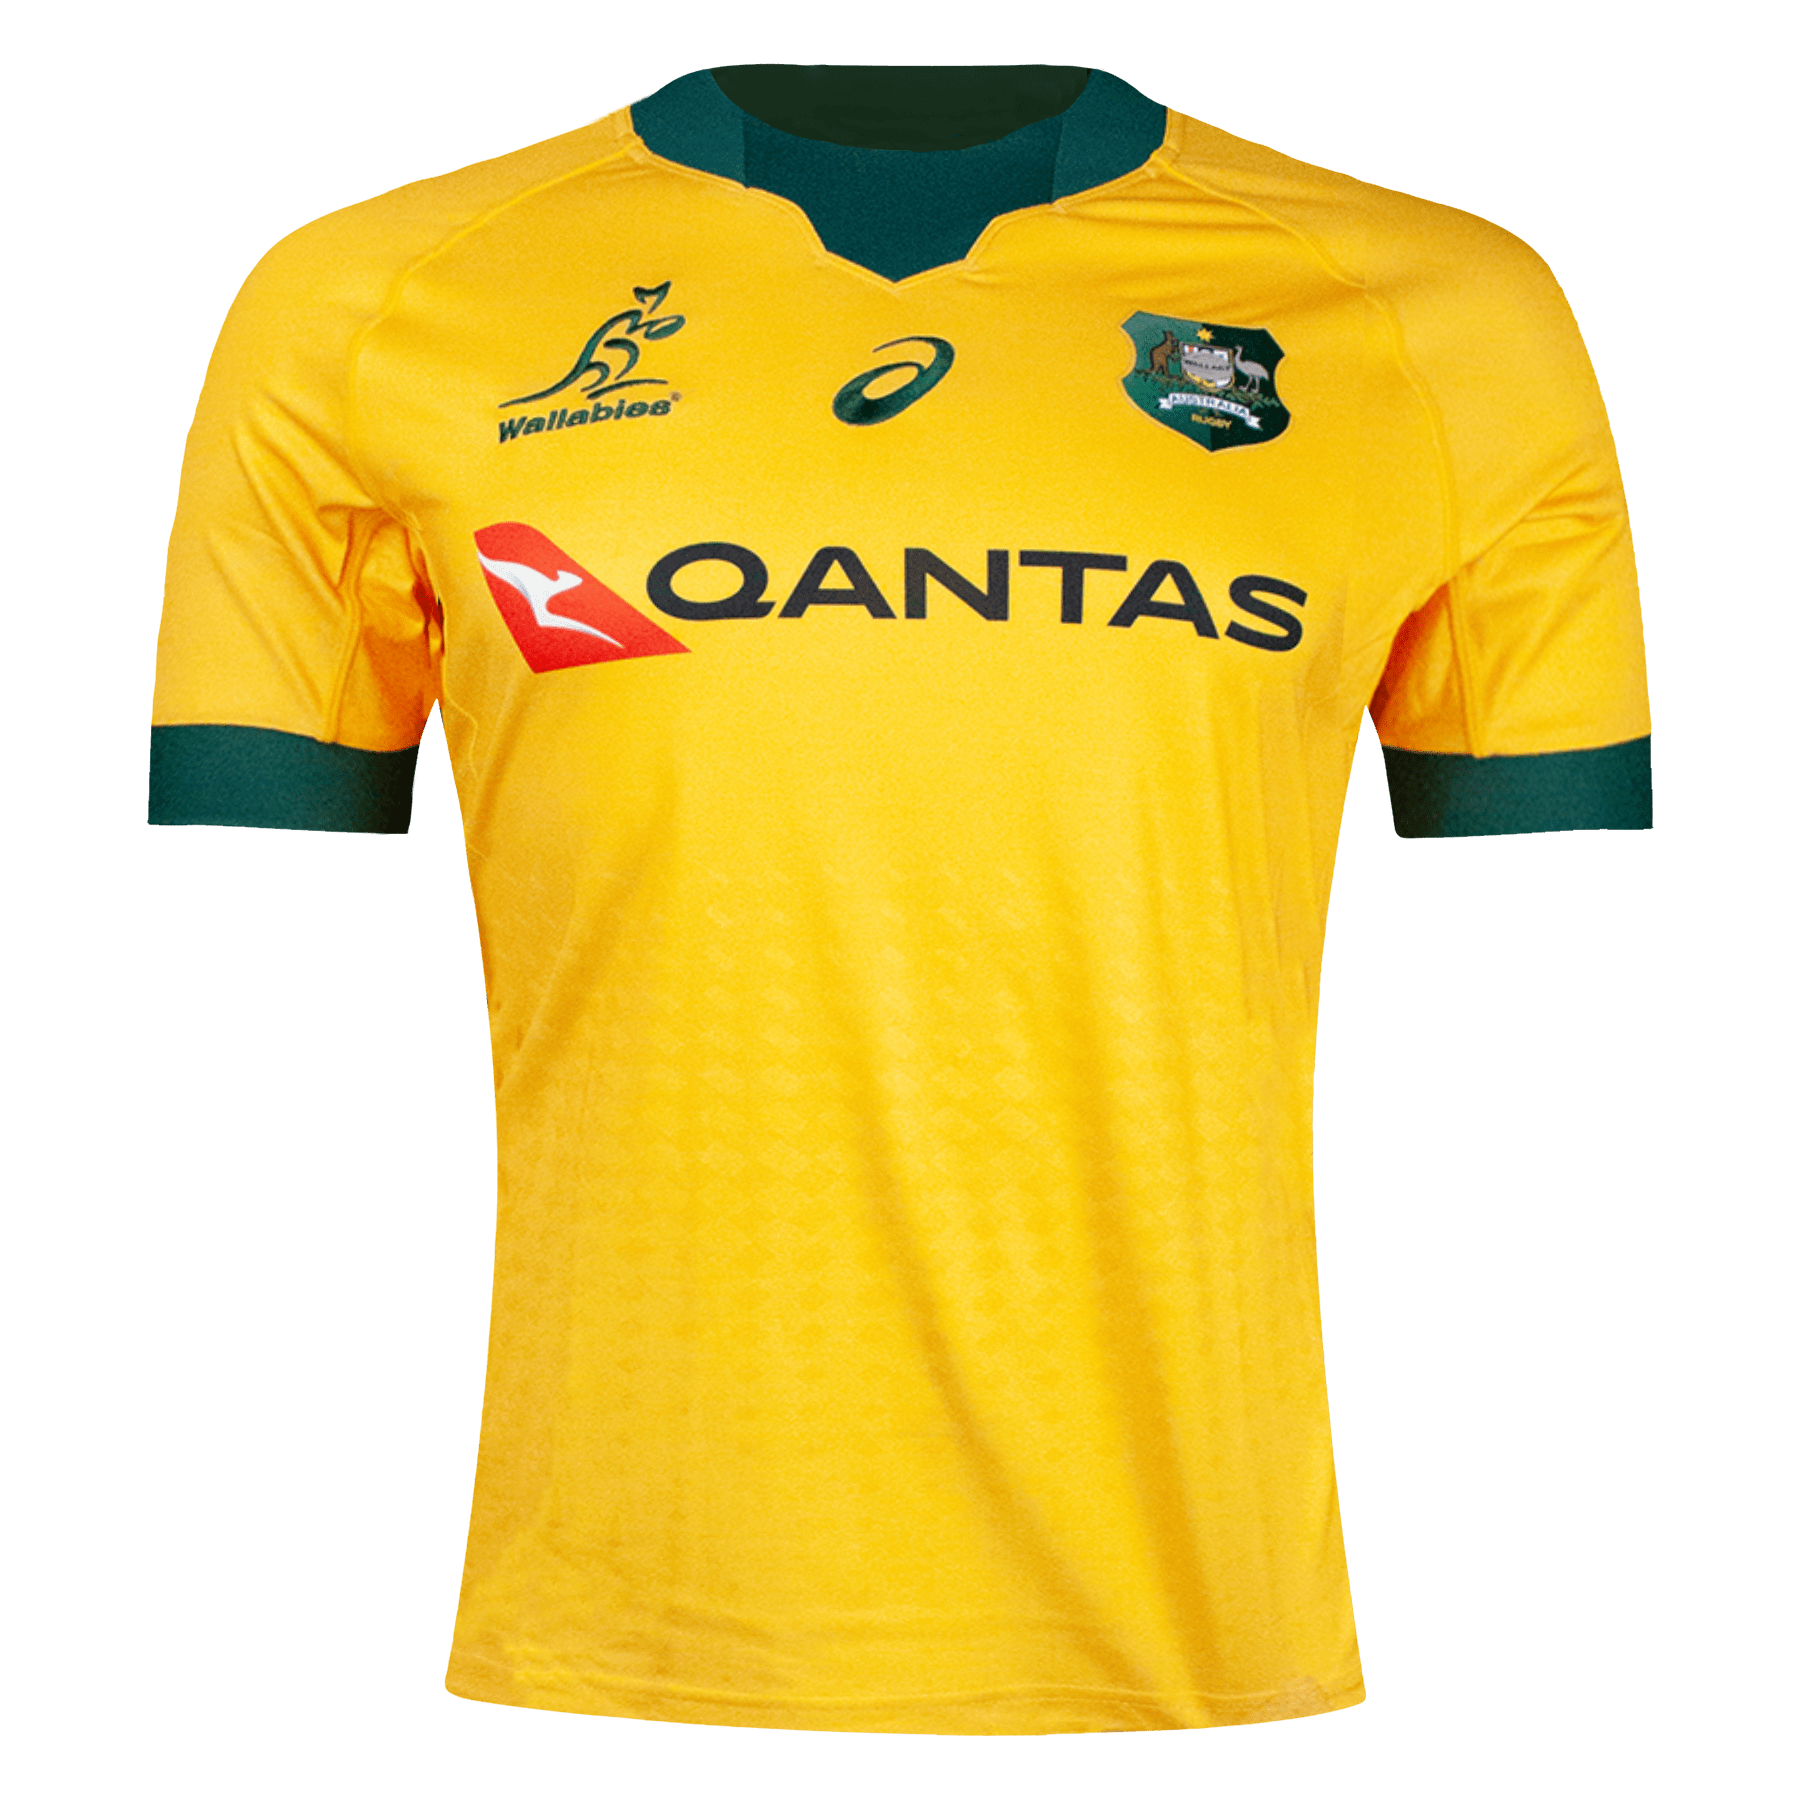 Asics Wallabies Home Rugby Jersey